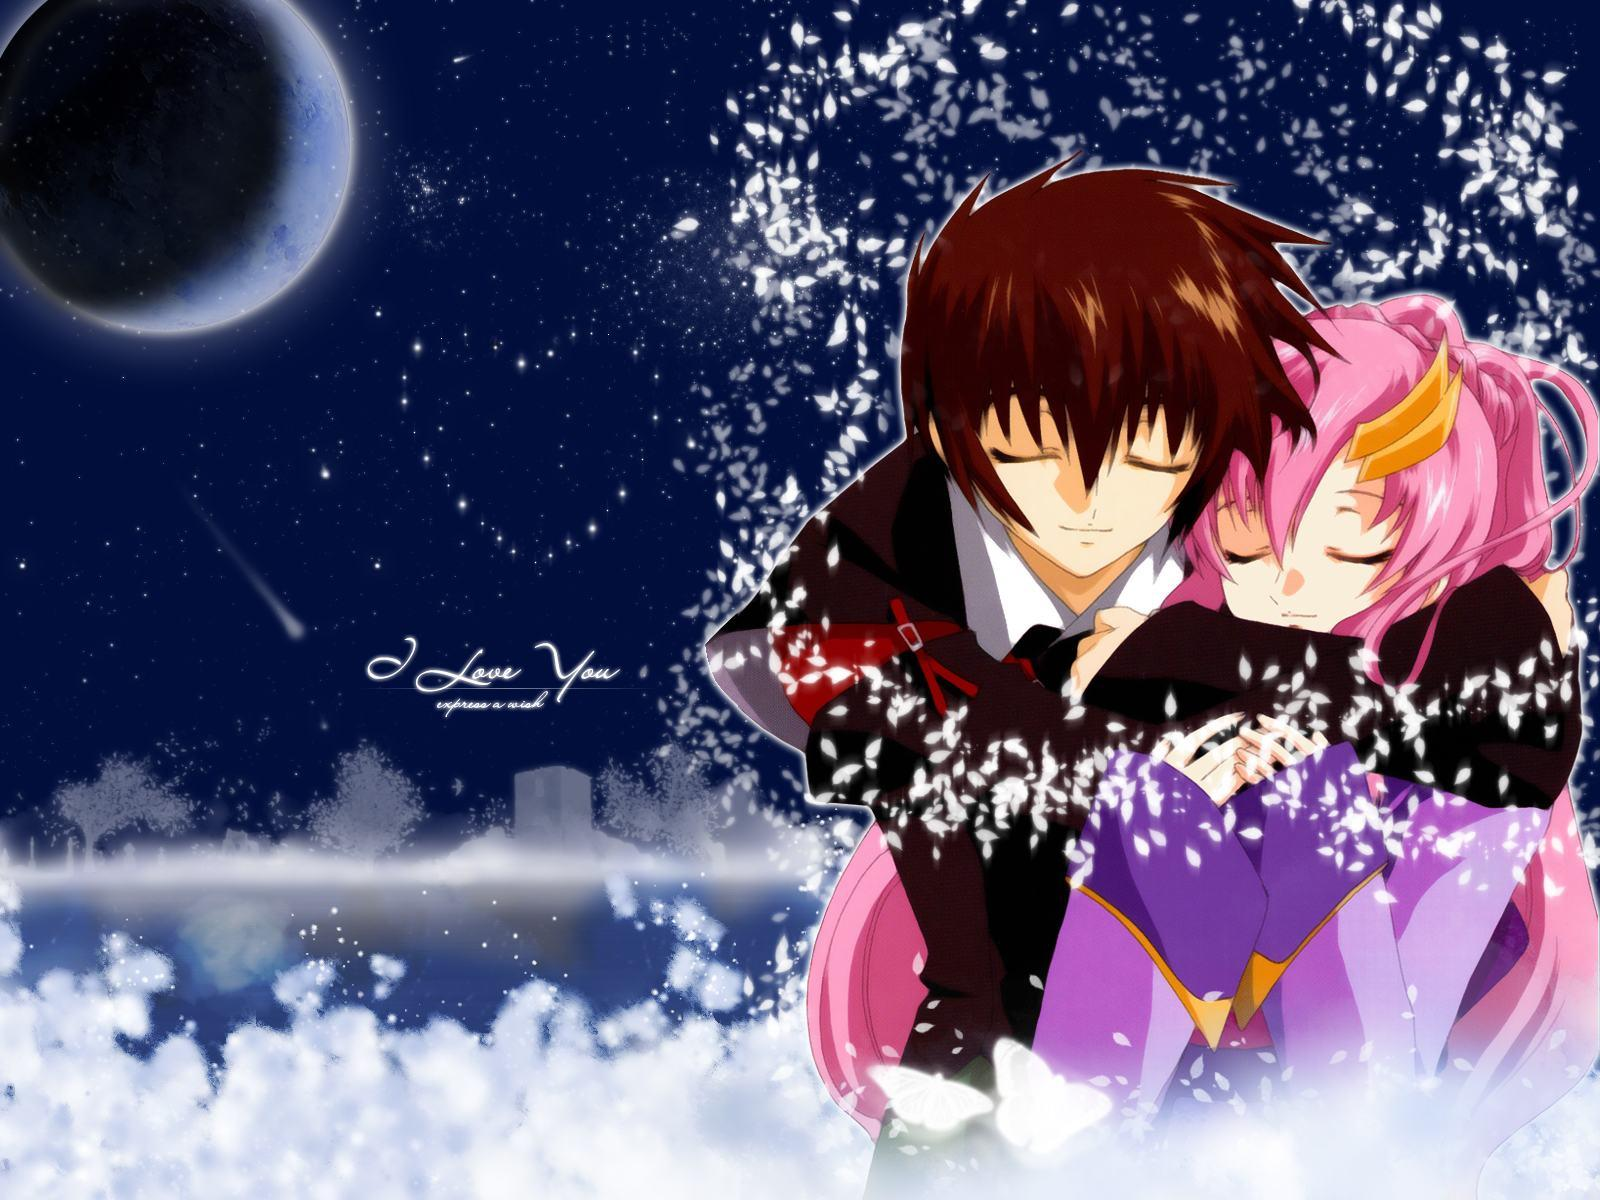 cute Love Wallpaper Animated : Love Wallpaper Backgrounds - Wallpaper cave